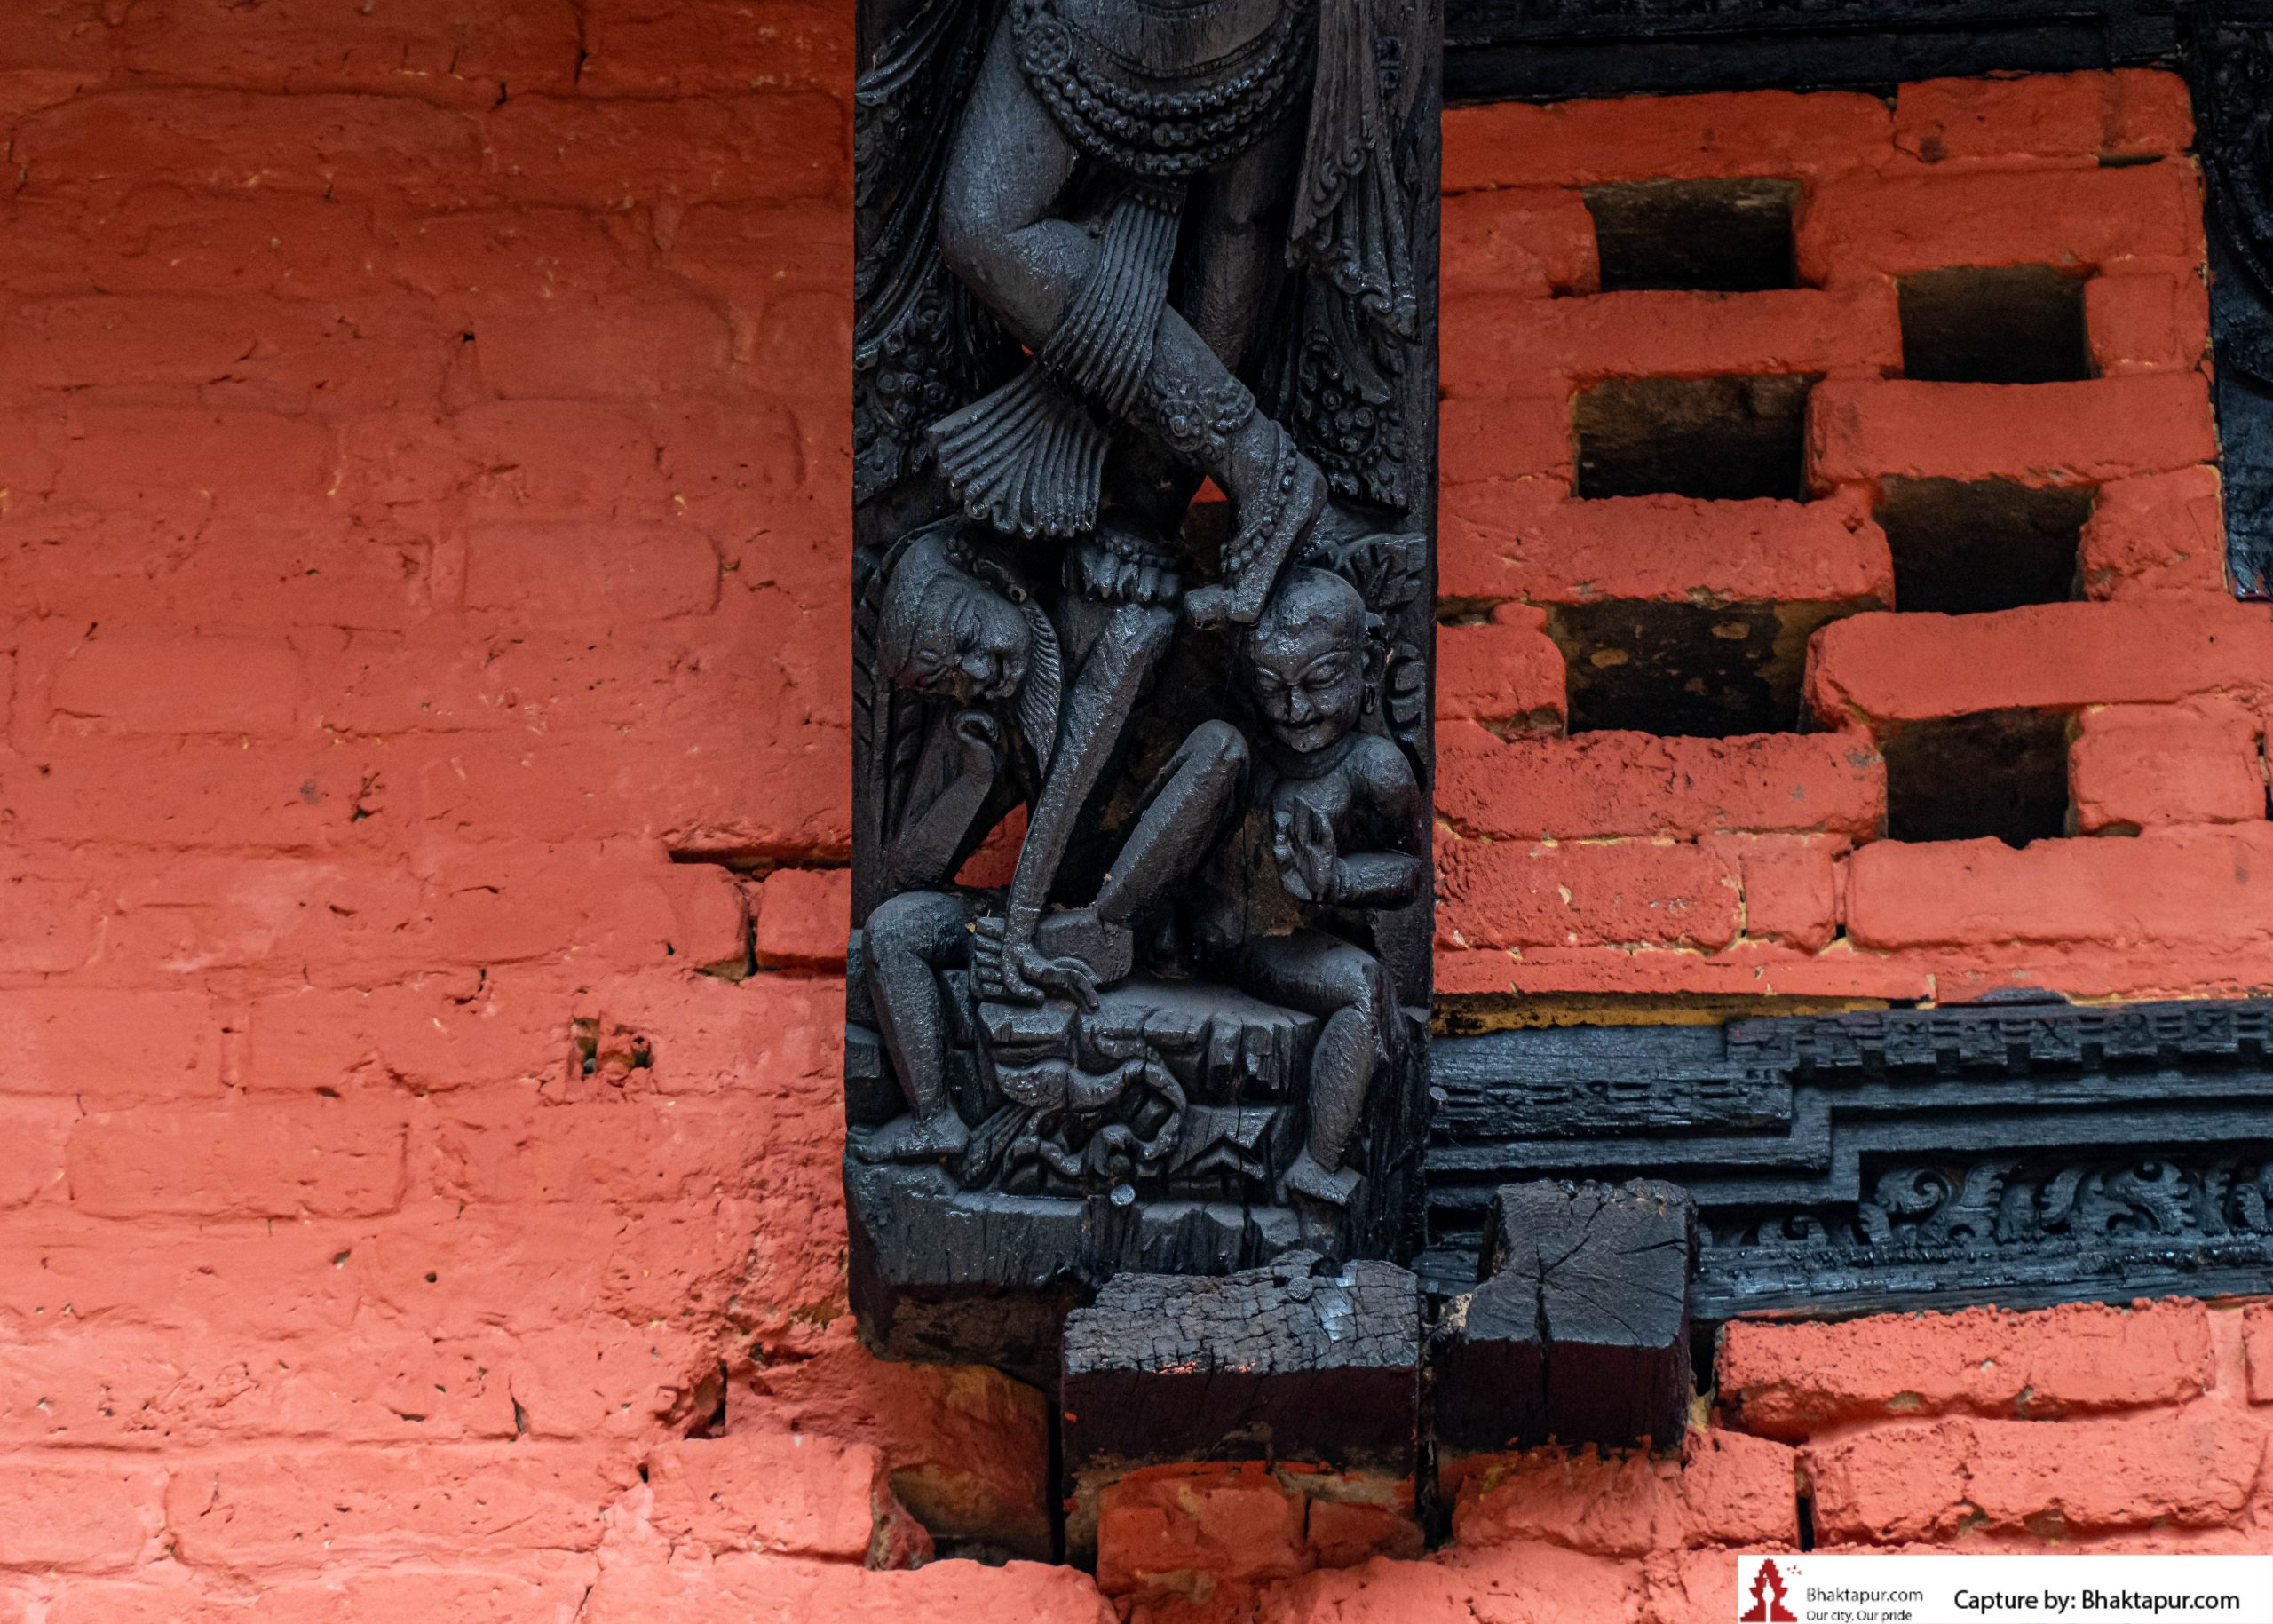 https://www.bhaktapur.com/wp-content/uploads/2021/08/erotic-carving-70-of-137-scaled.jpg